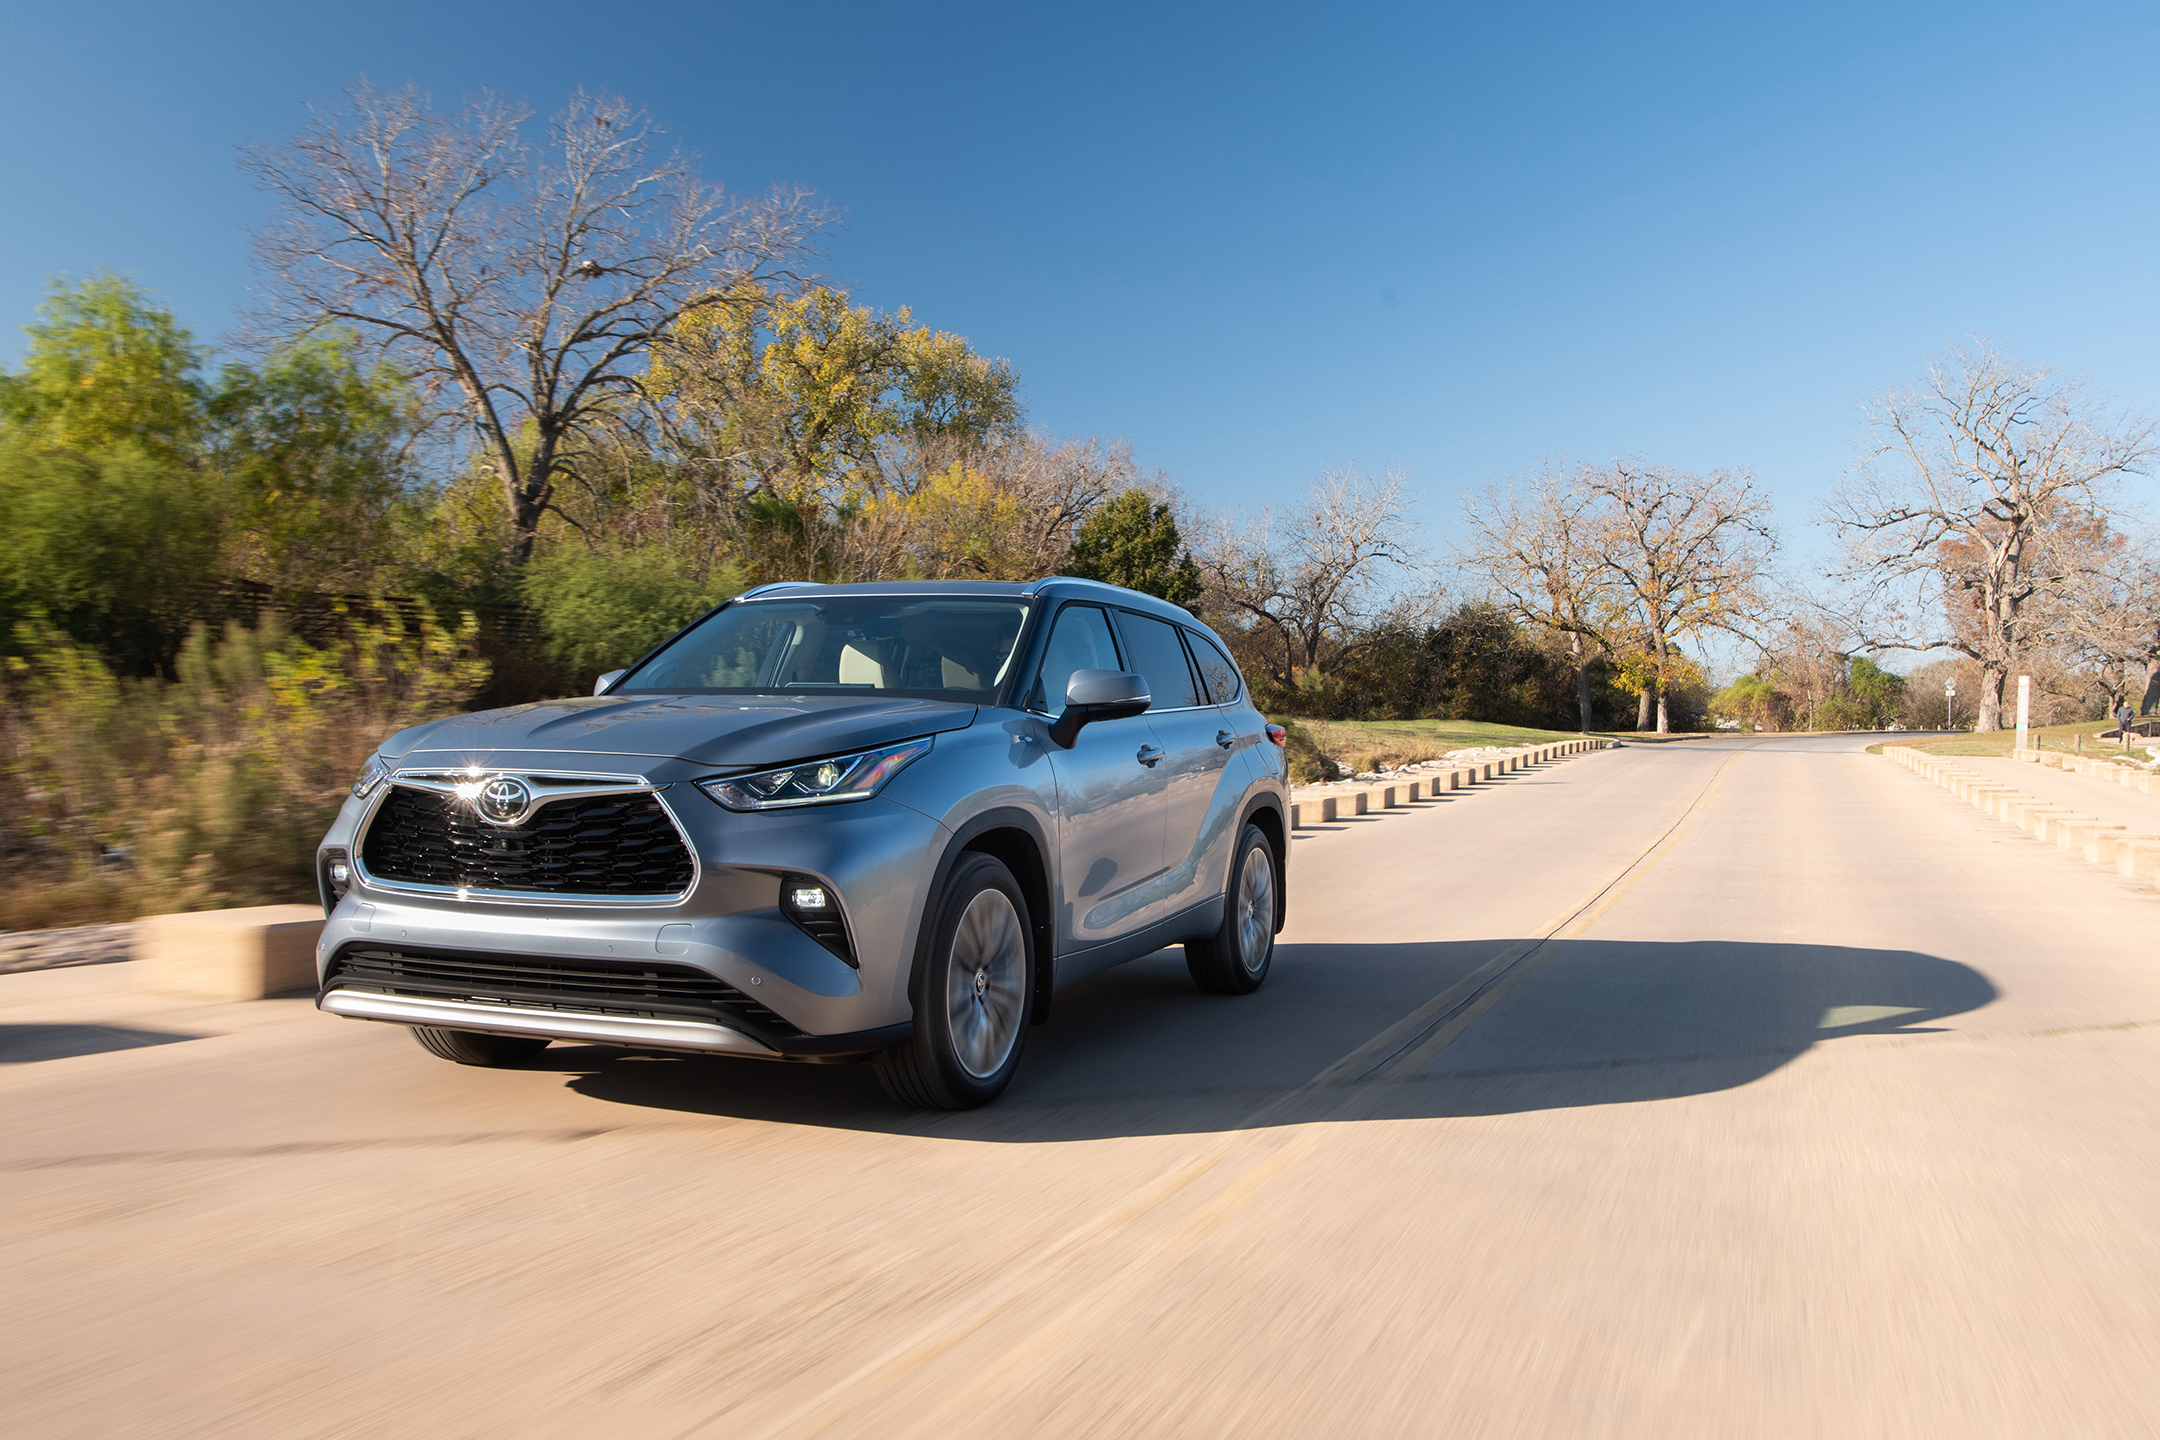 2020 Toyota Highlander: Well-Equipped But Whoa-Nelly Priced